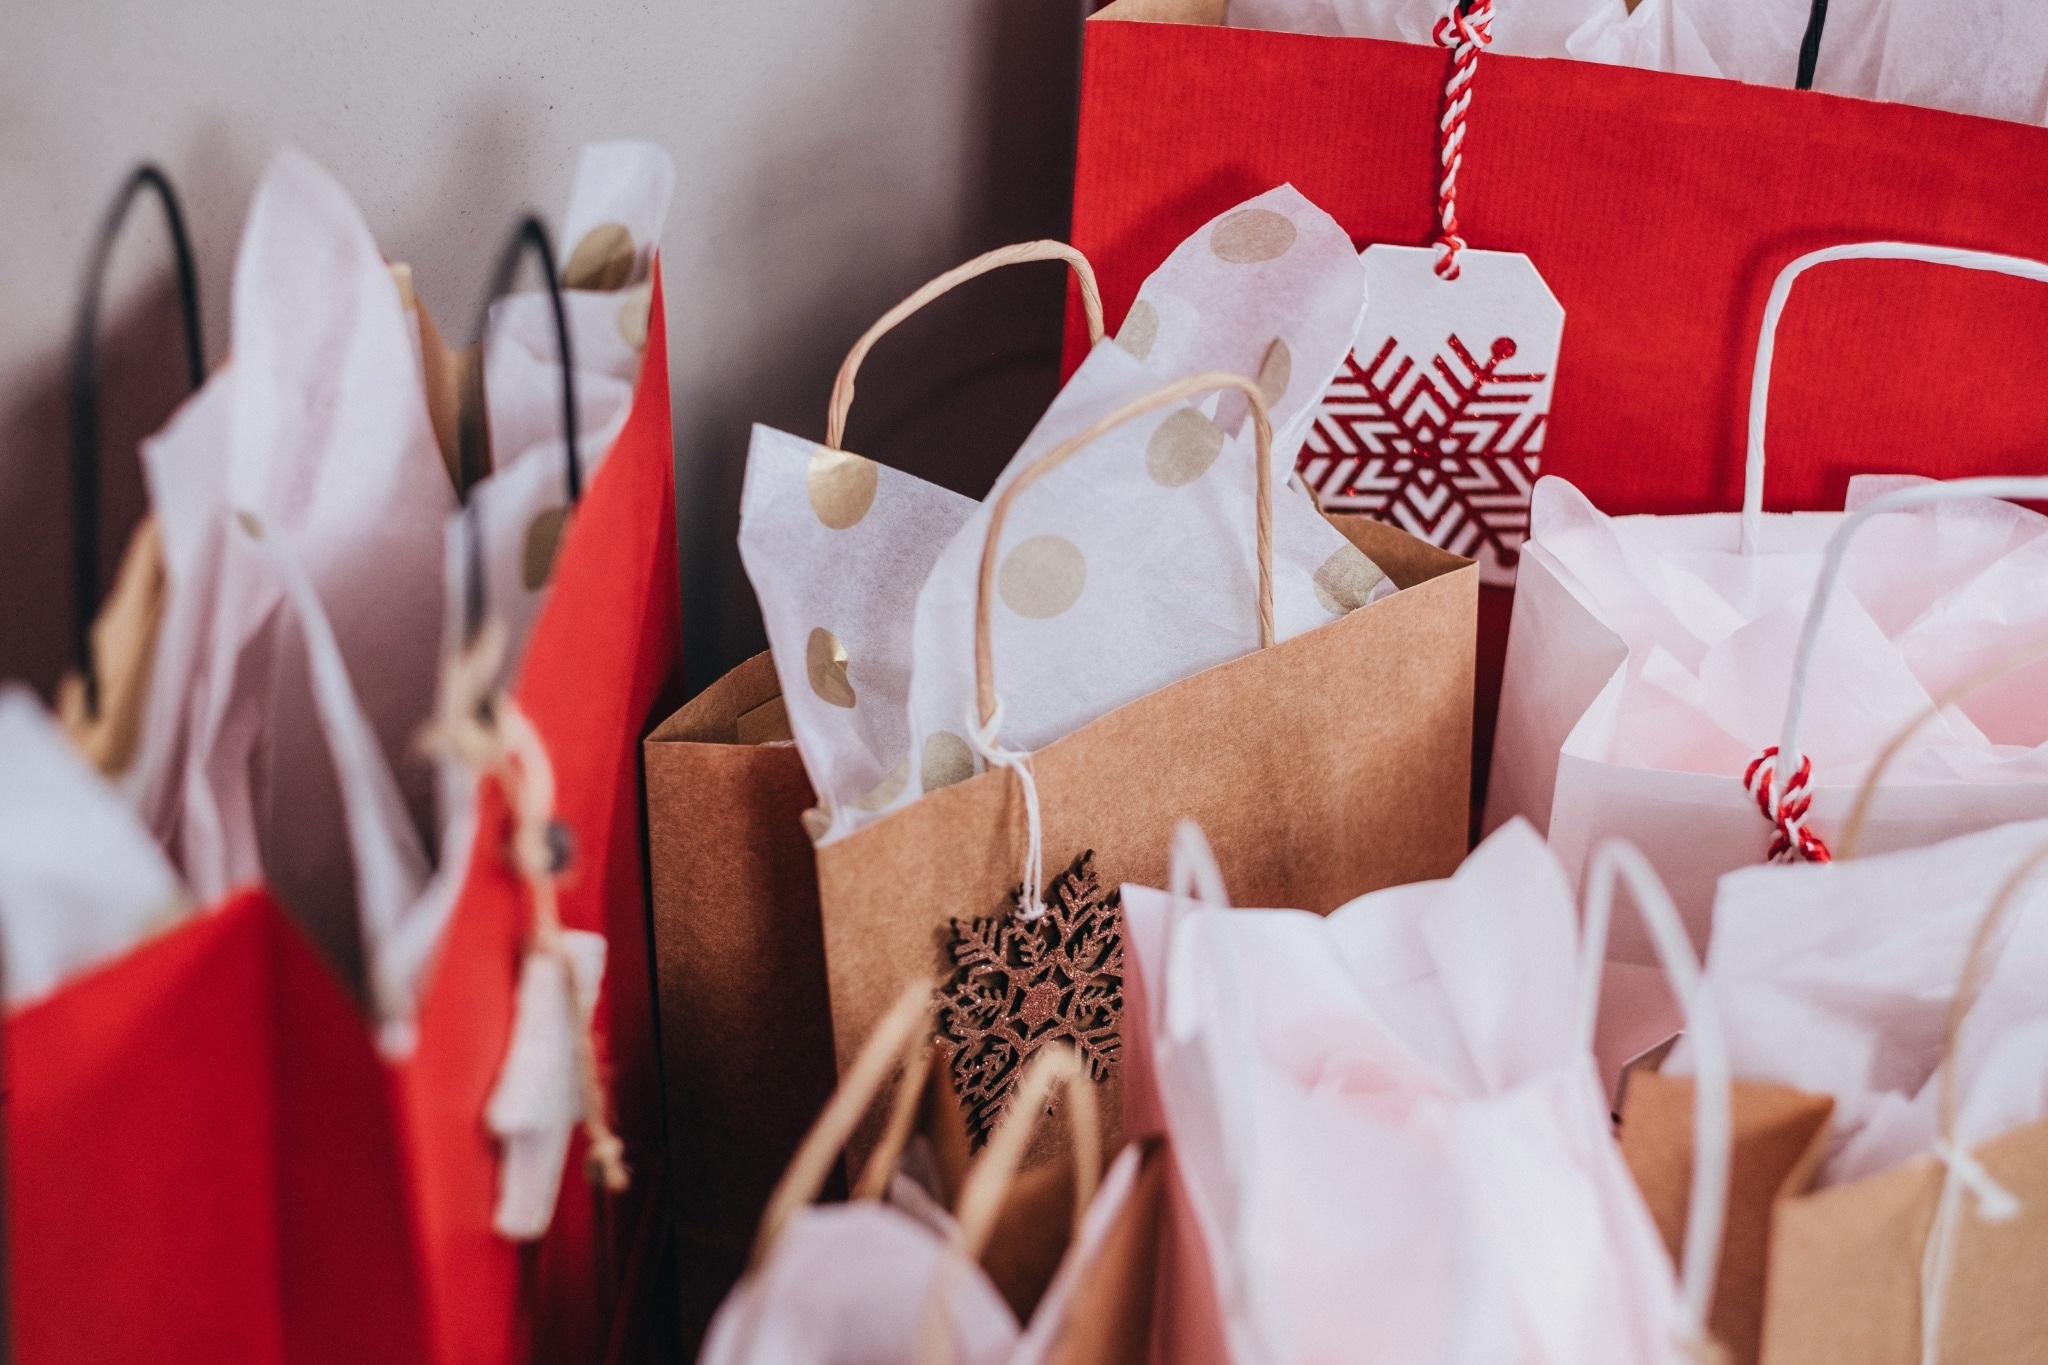 Influencers: How to Earn More by Creating Gift Guides & Product Roundup Reviews